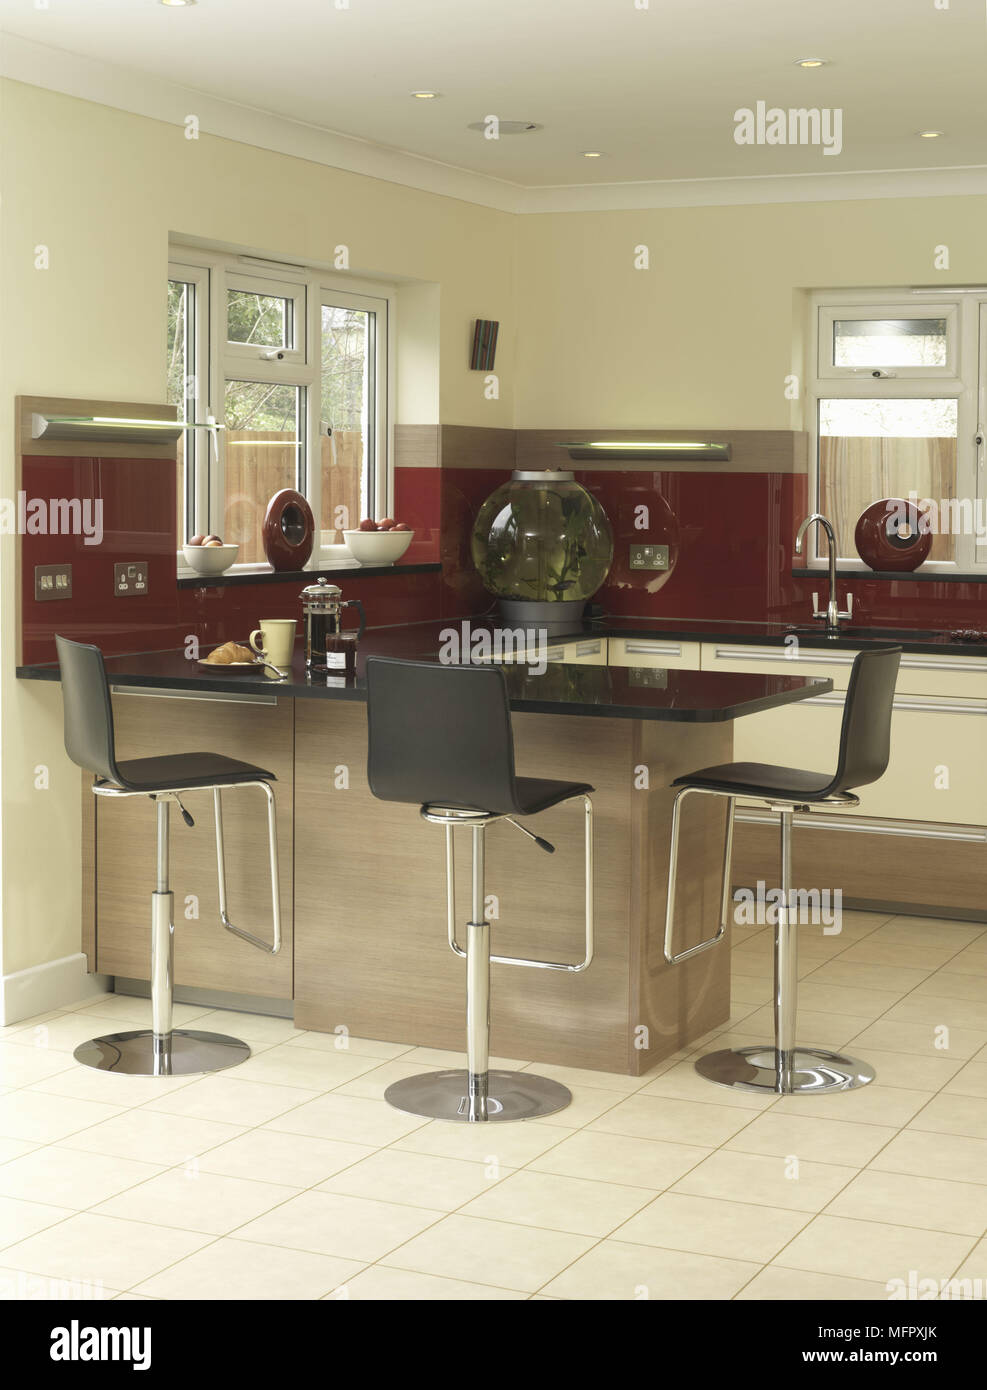 Bar Stools At Peninsula Breakfast Bar Unit In Modern Kitchen ...